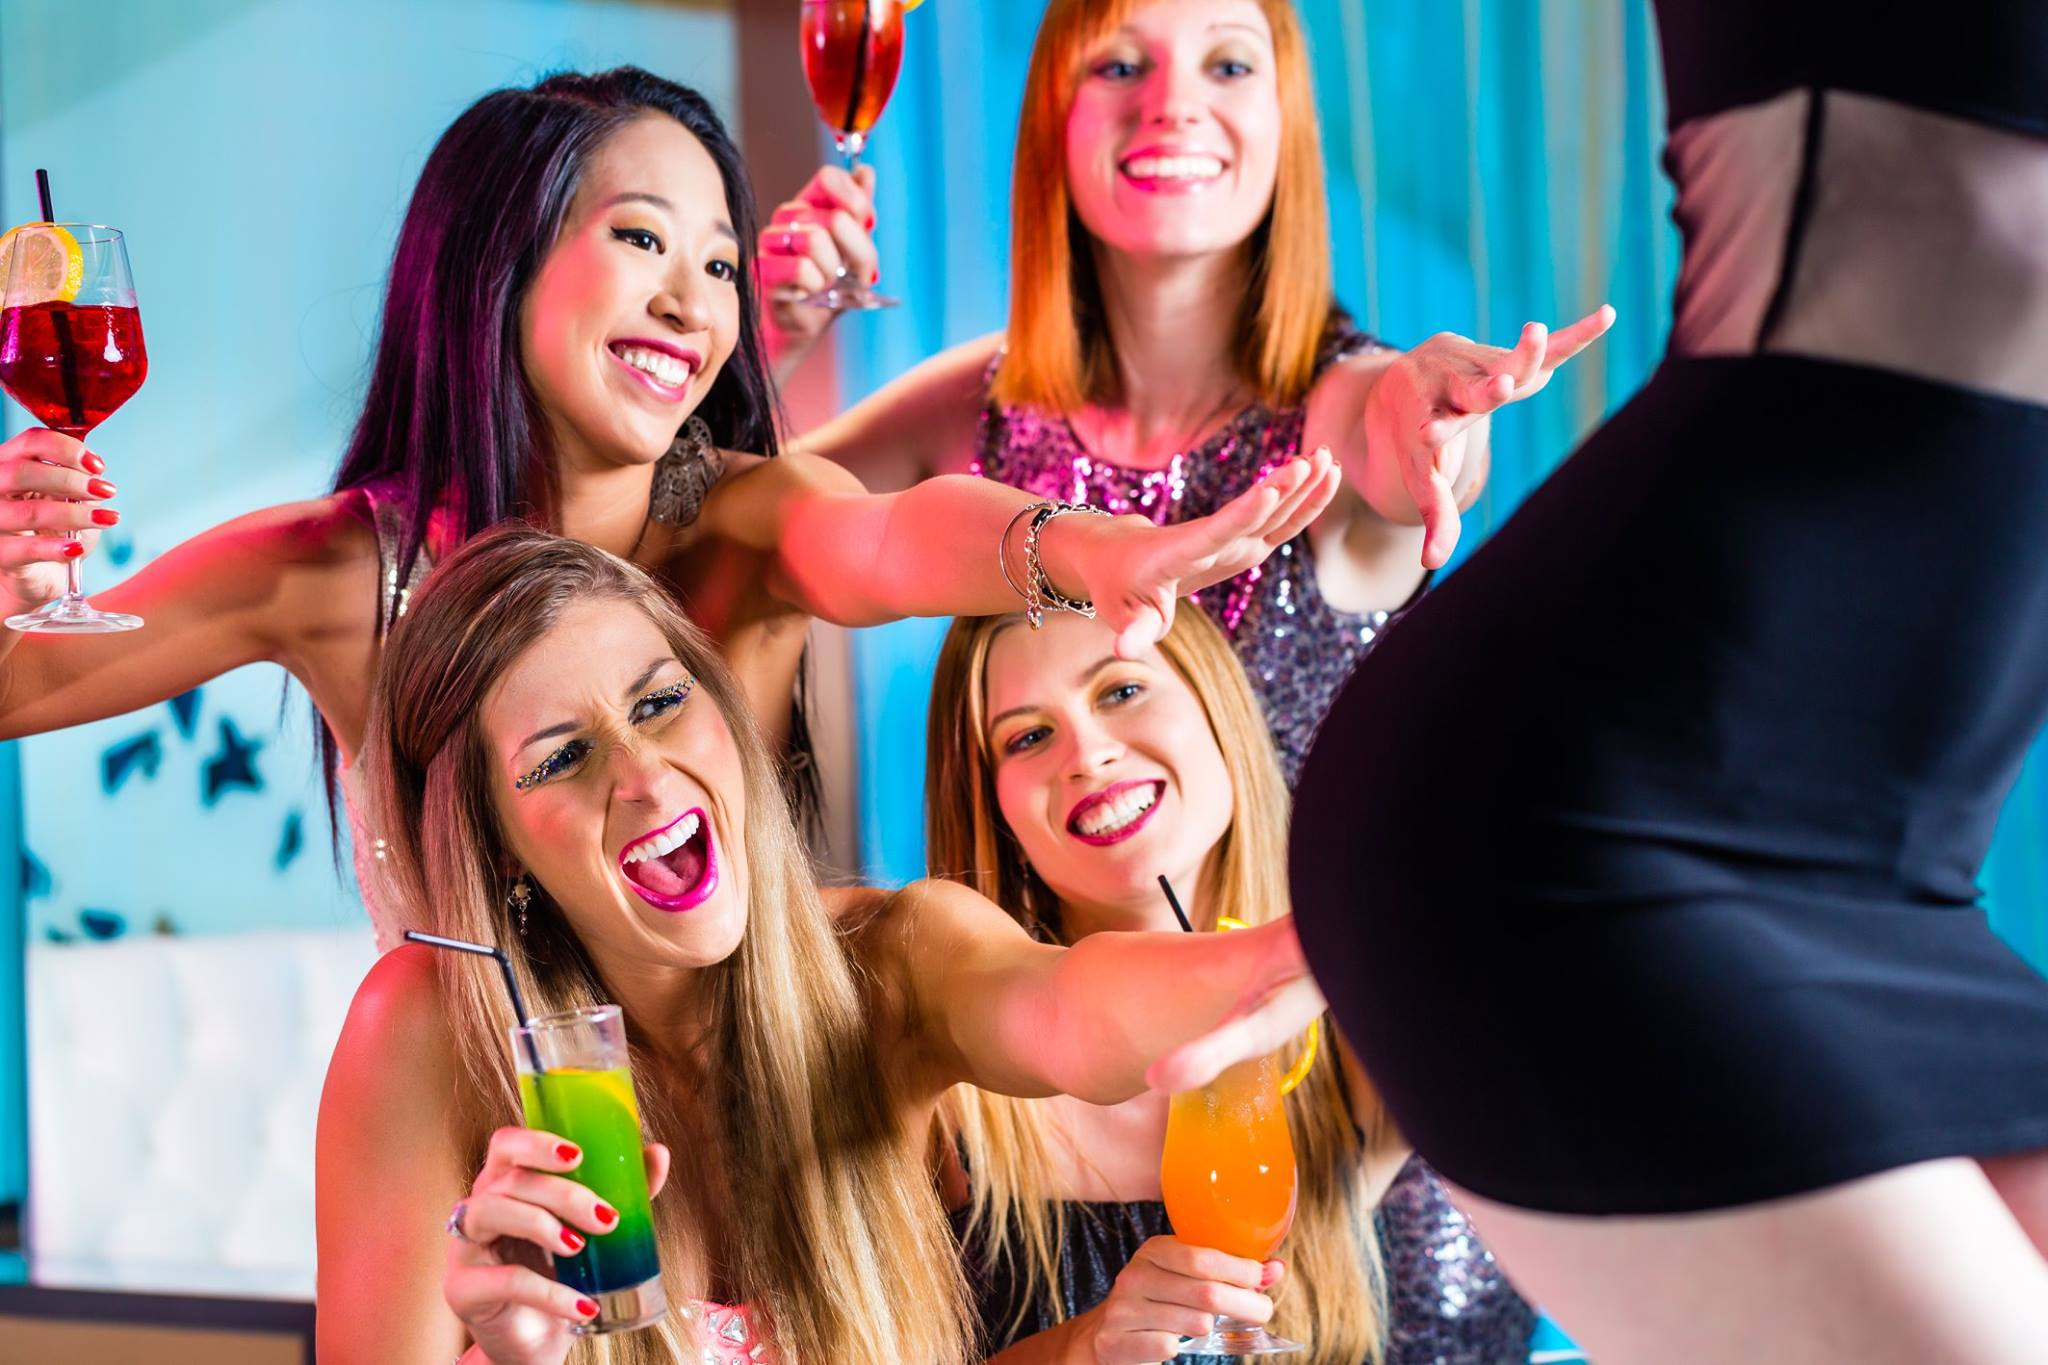 Book your Stripper 101 Party right on the Vegaster App